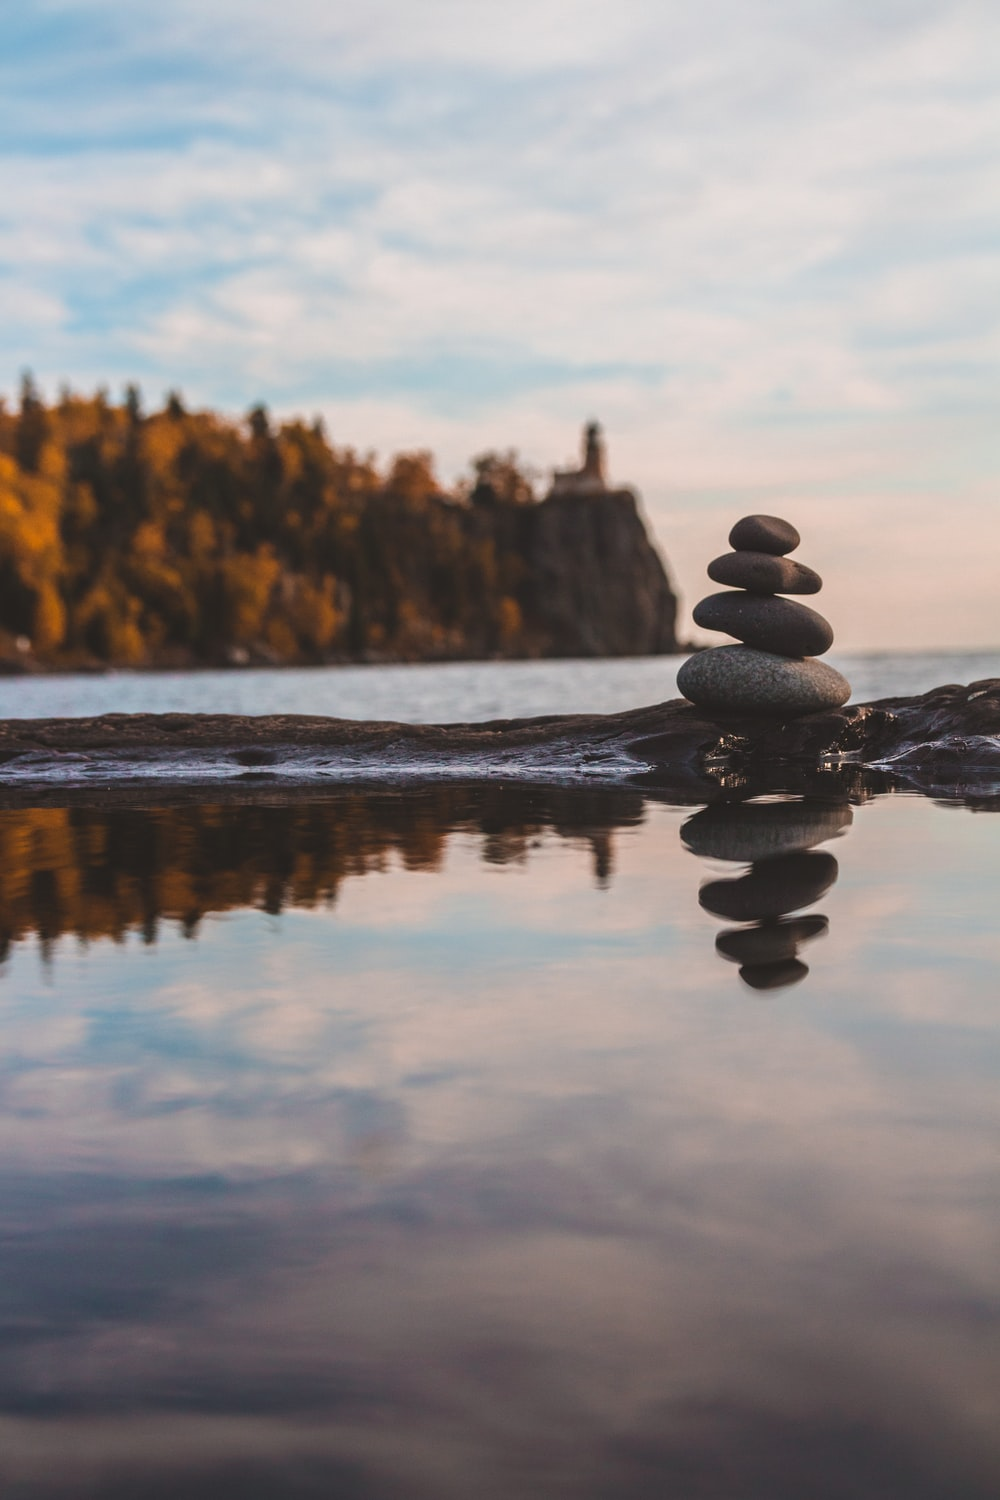 black stone on body of water during daytime